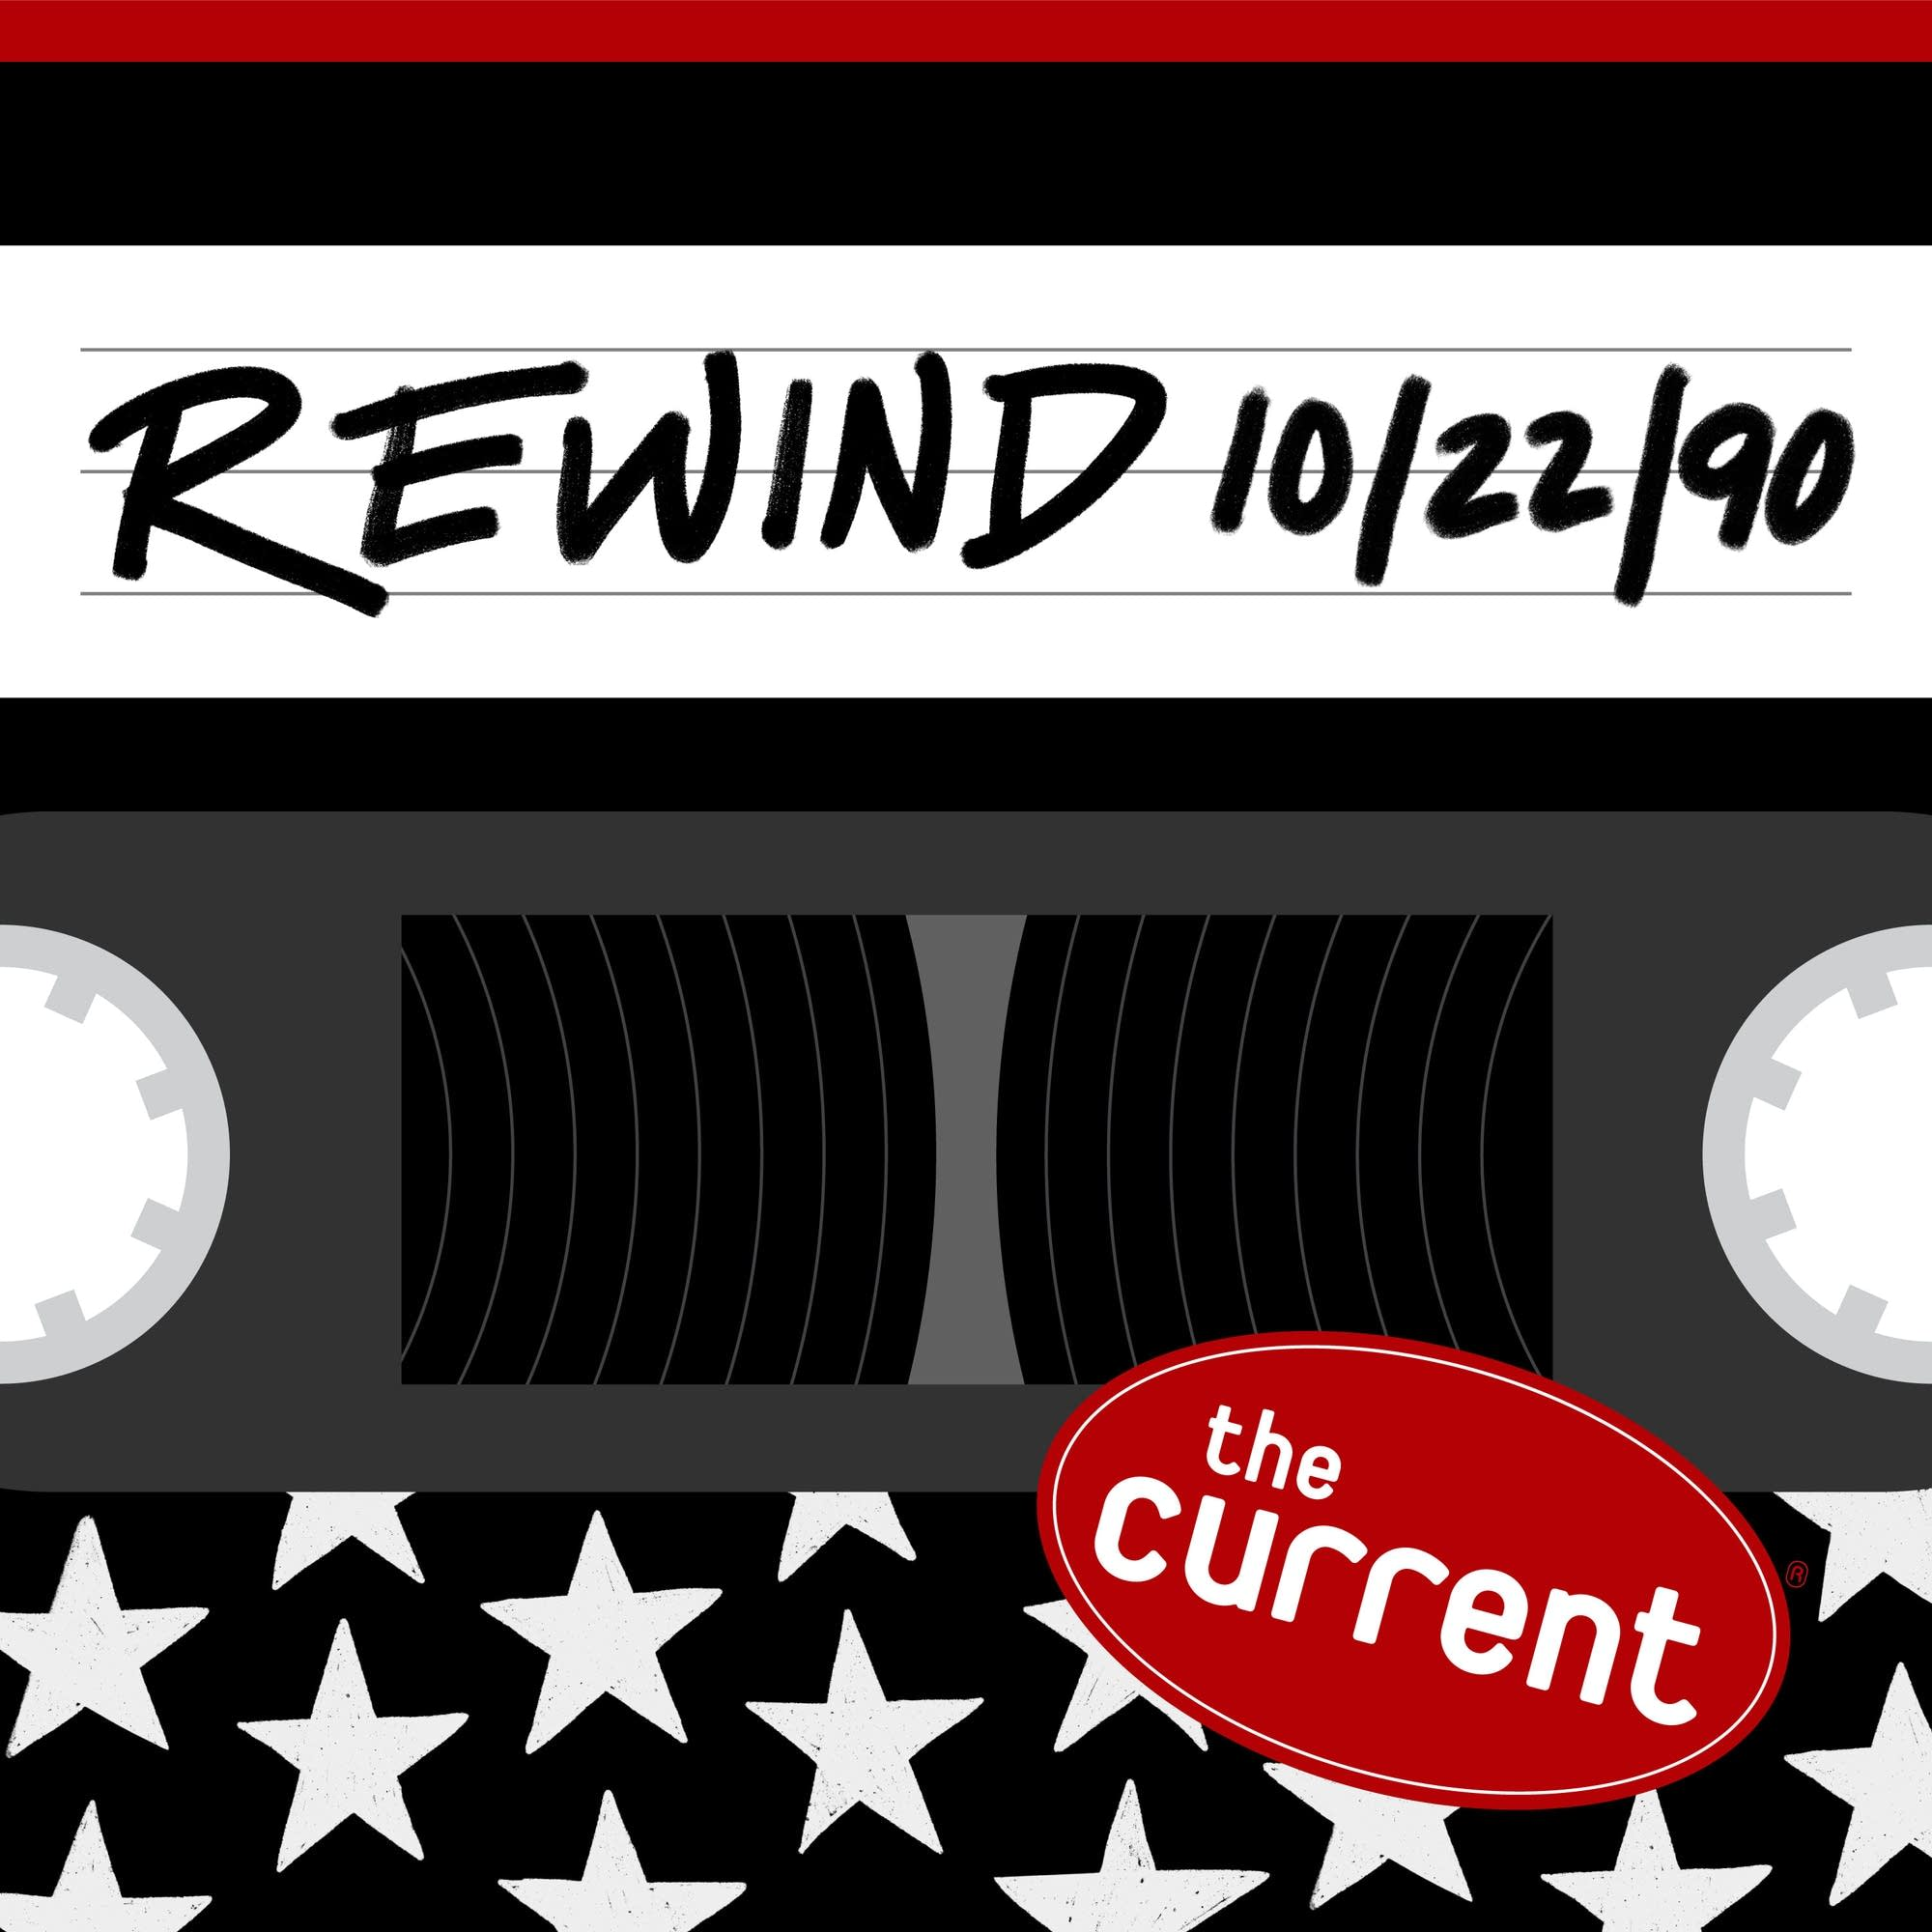 The Current Rewind: 10/22/90